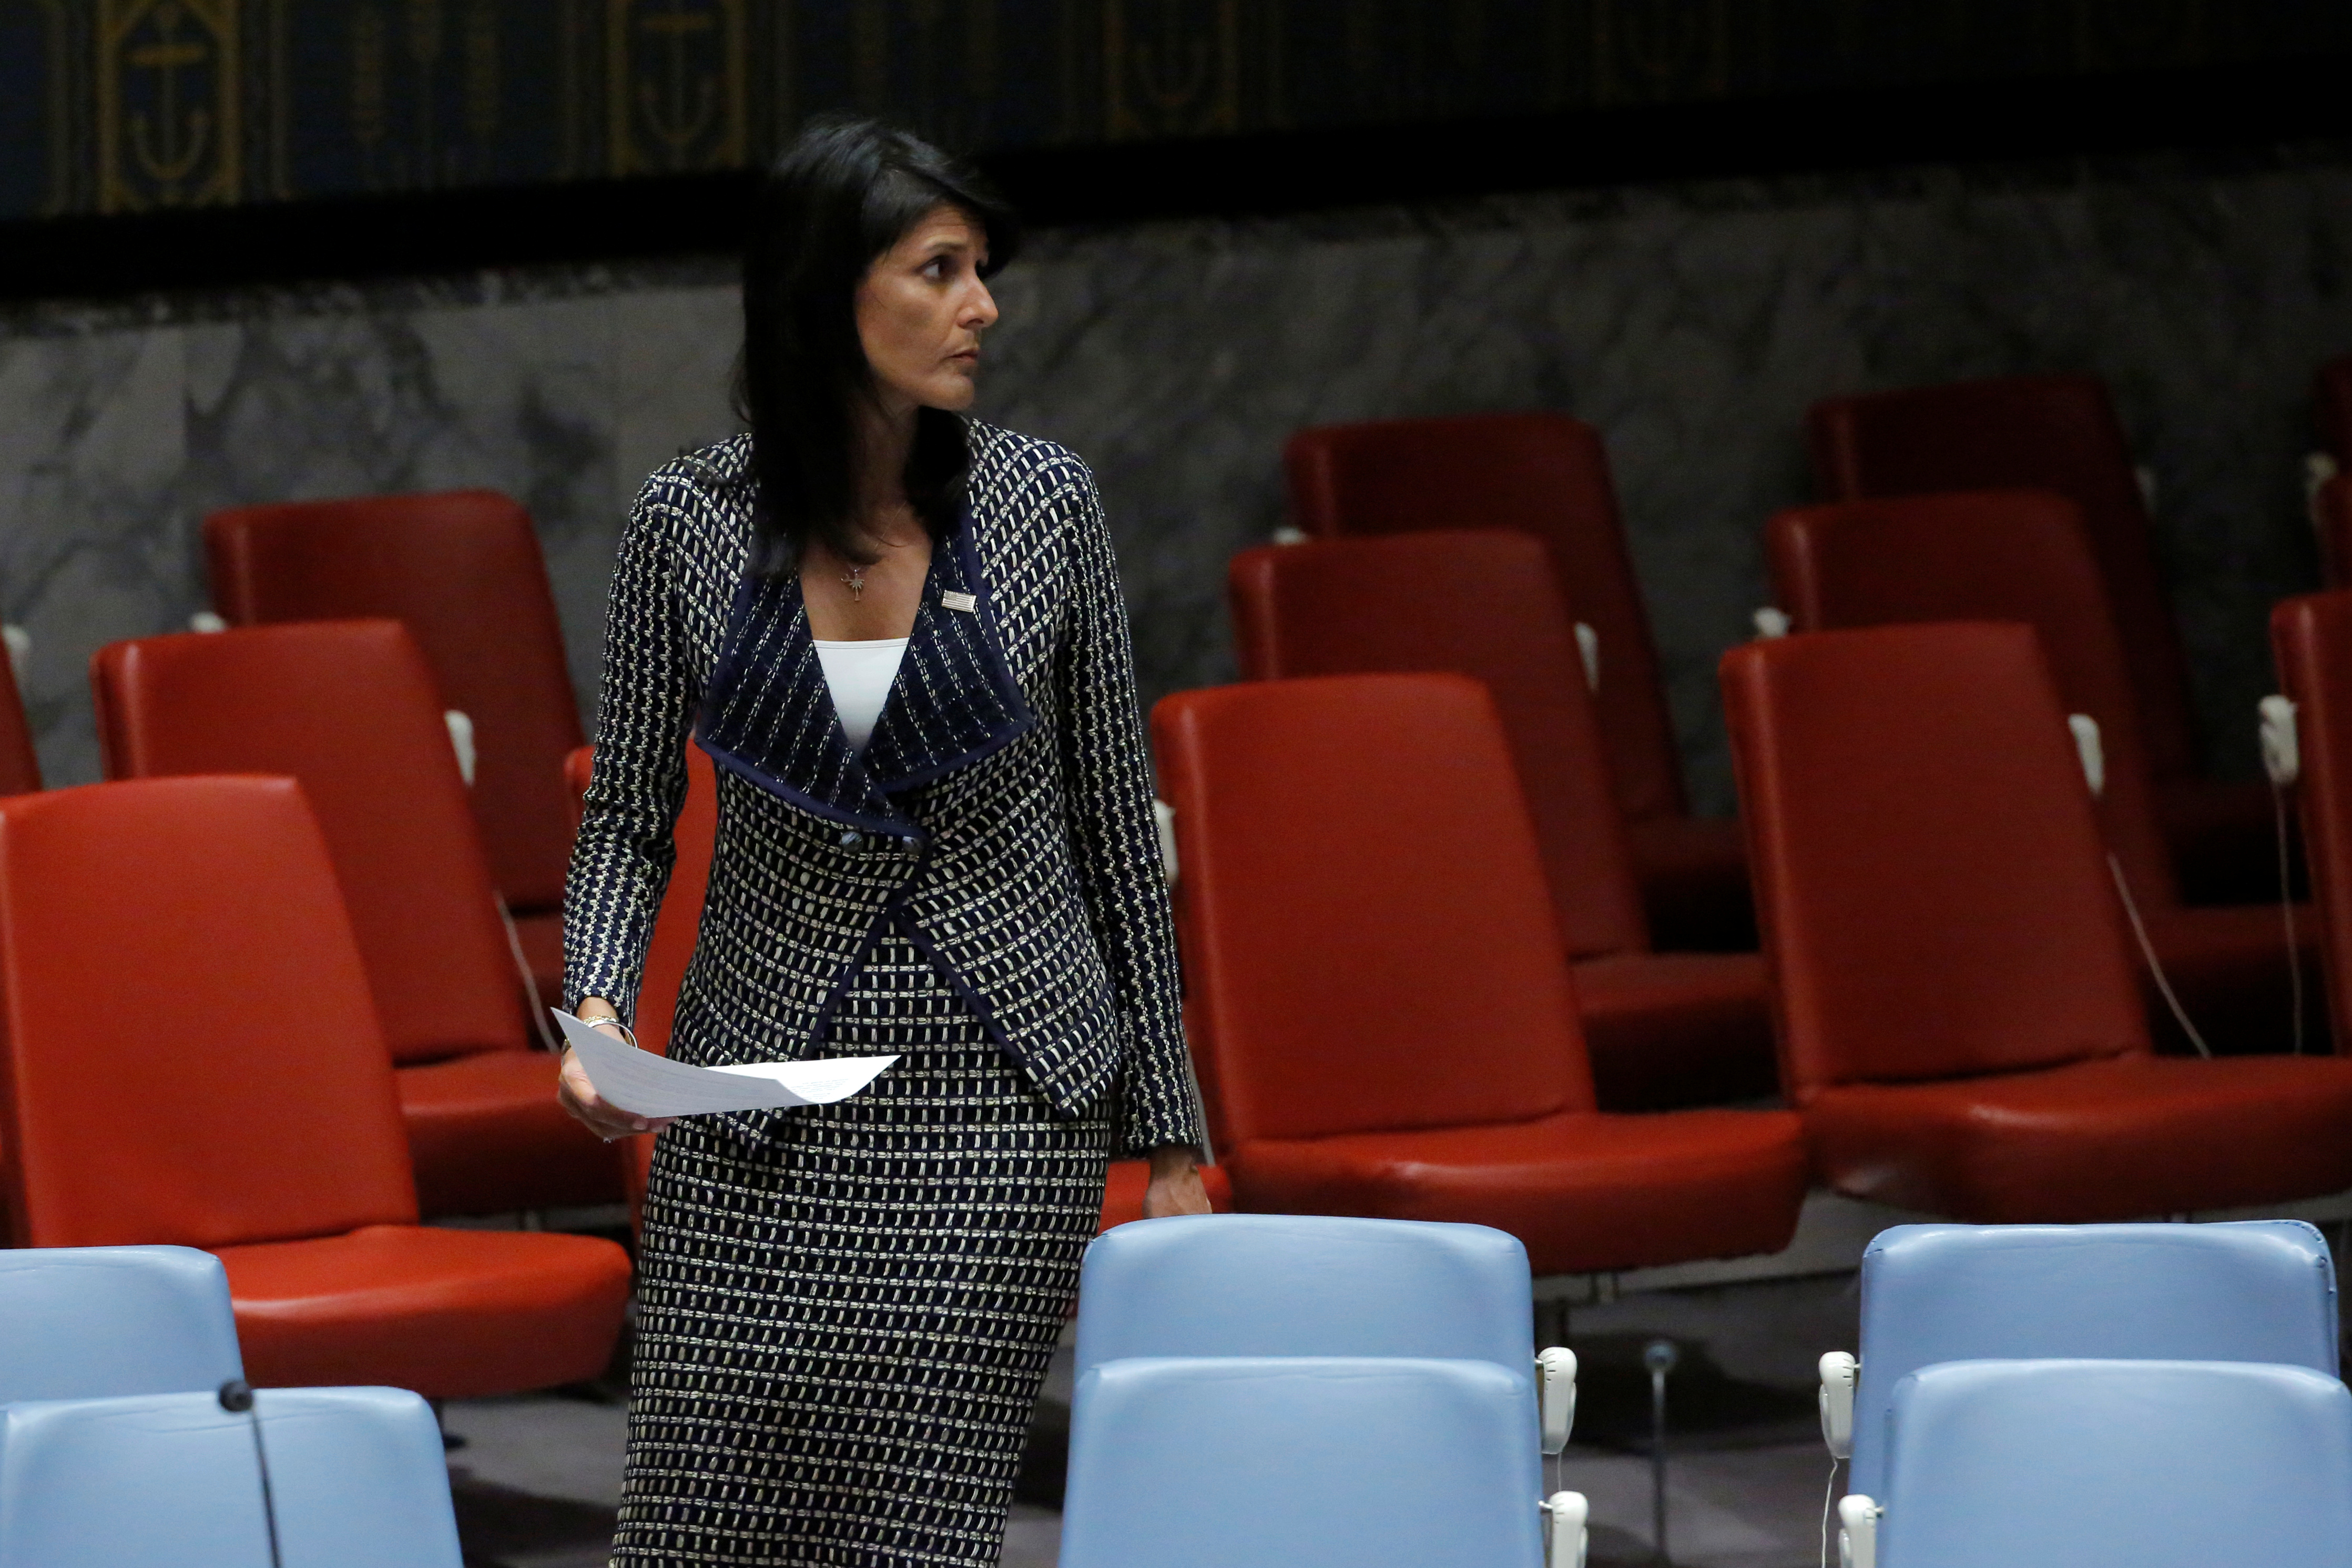 U.S. Ambassador to the United Nations Nikki Haley arrives for a meeting by the United Nations Security Council on North Korea at the U.N. headquarters in New York City on Aug. 29, 2017  (REUTERS/Andrew Kelly)